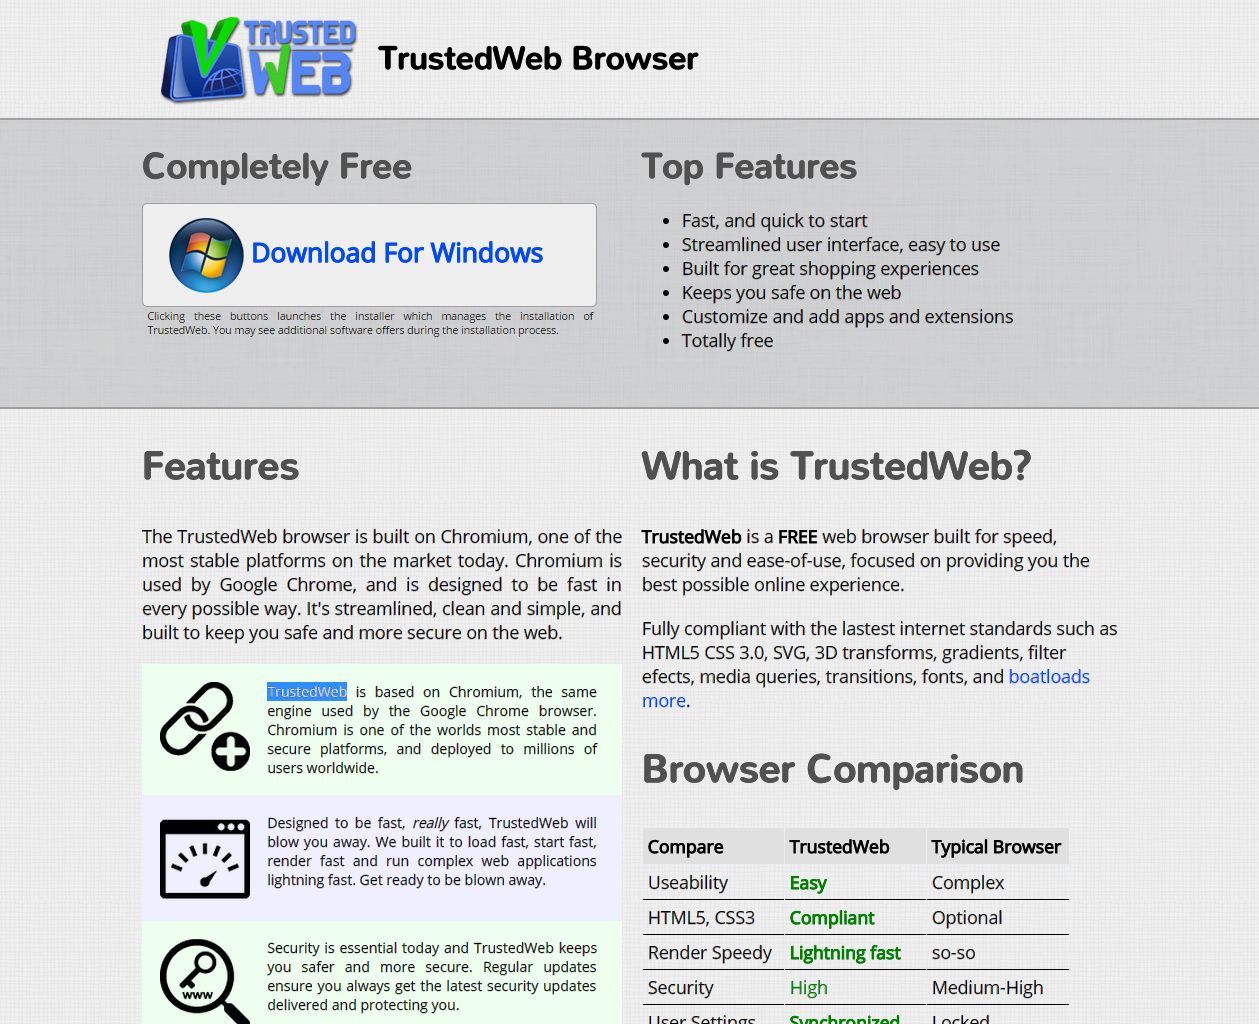 VeriBrowse o TrustedWeb Browser